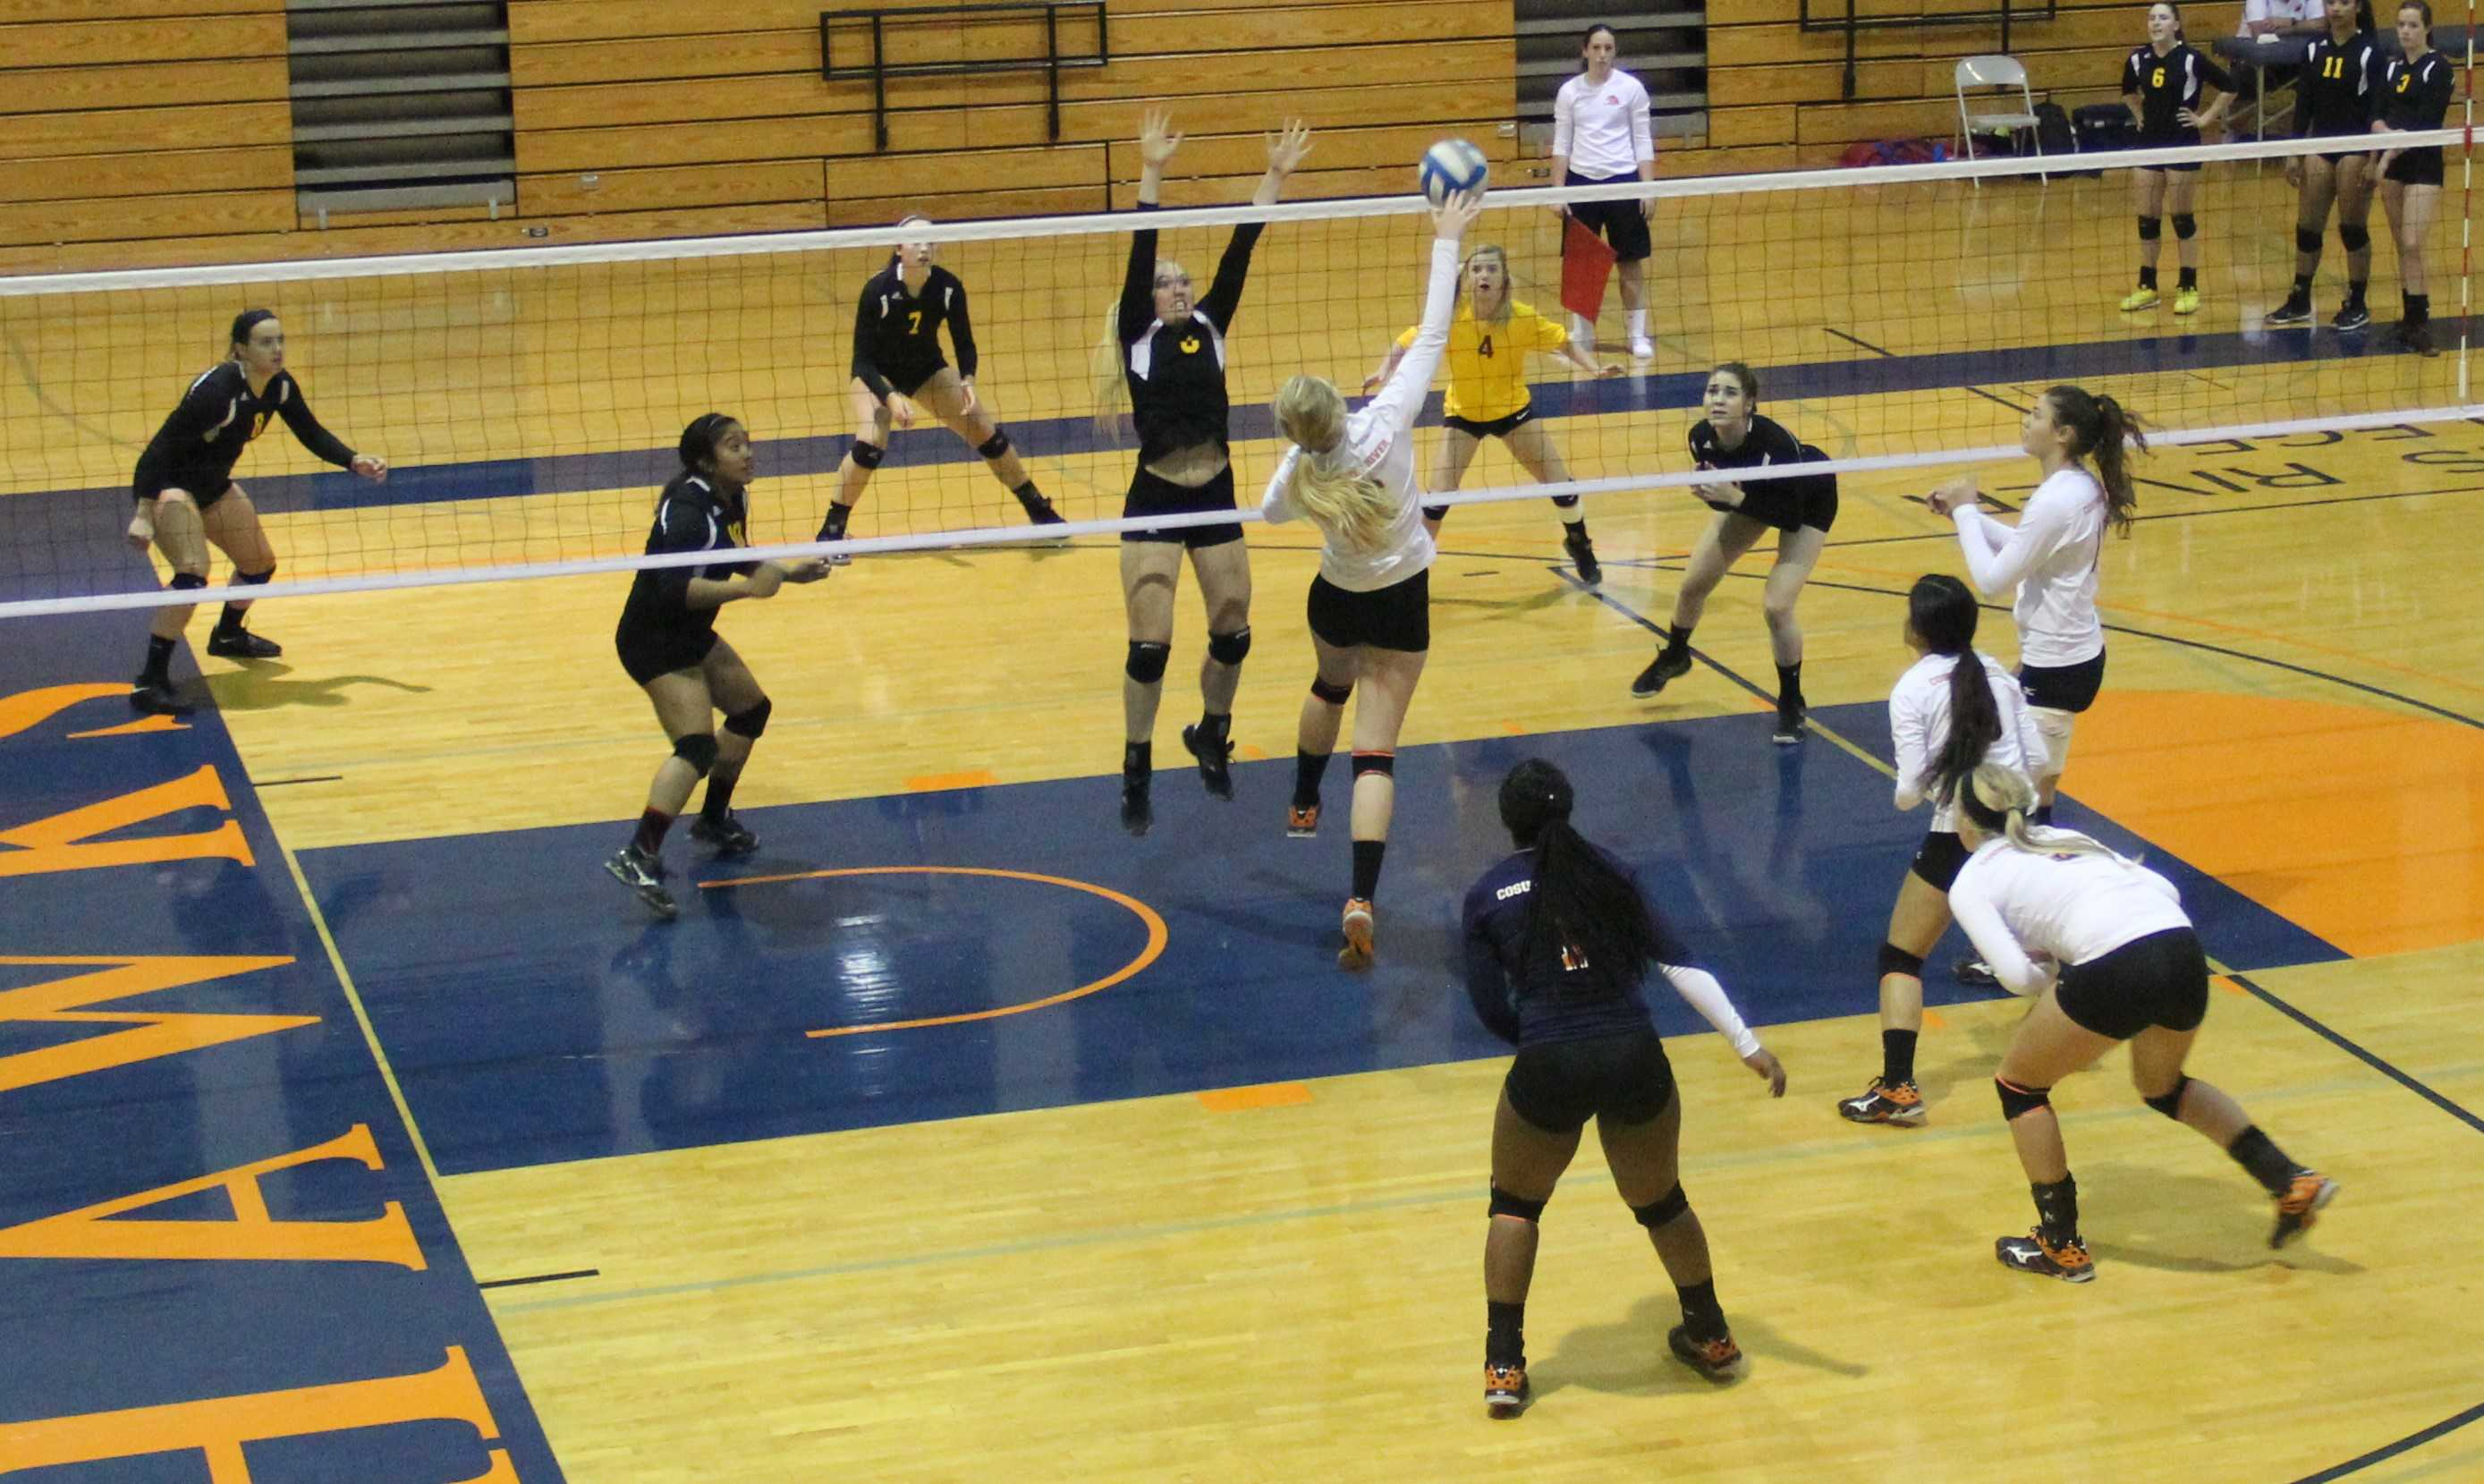 Justice Cooper, outside hitter, goes for a spike on the ball during a tournament hosted at CRC on Sept. 18.